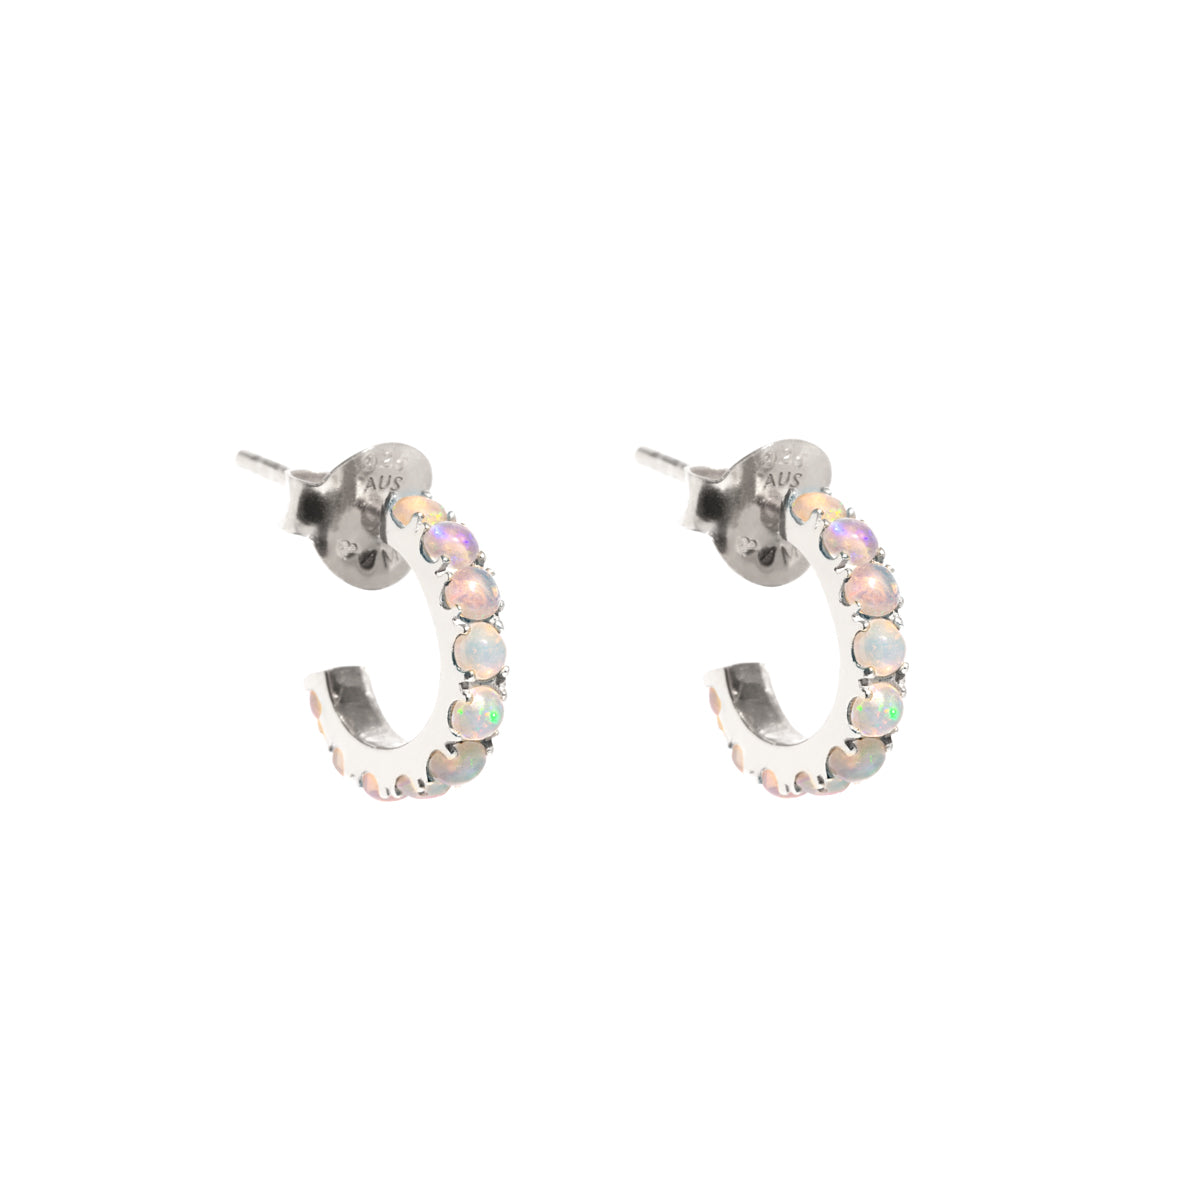 The Silver Opal Droplet Huggie Earrings